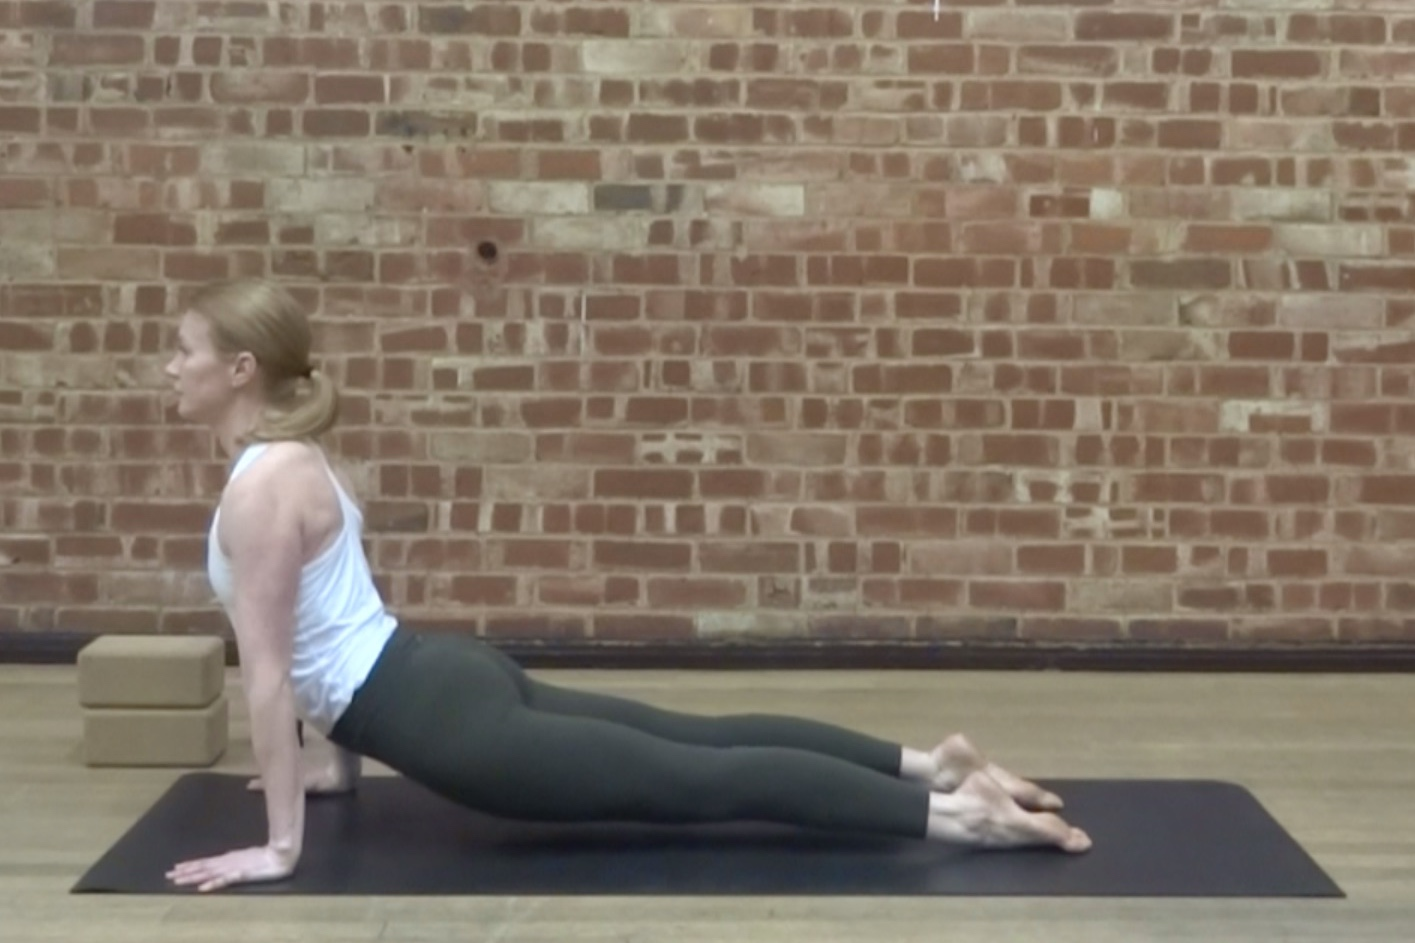 THE ATHLETE'S TOTAL BODY SERIES - This 3 week series covers the main problem areas that sports people typically have. Each week there are 4 yoga classess: one for the hips, glutes and legs, one for the back and abs, one for the shoulders and arms and finally a